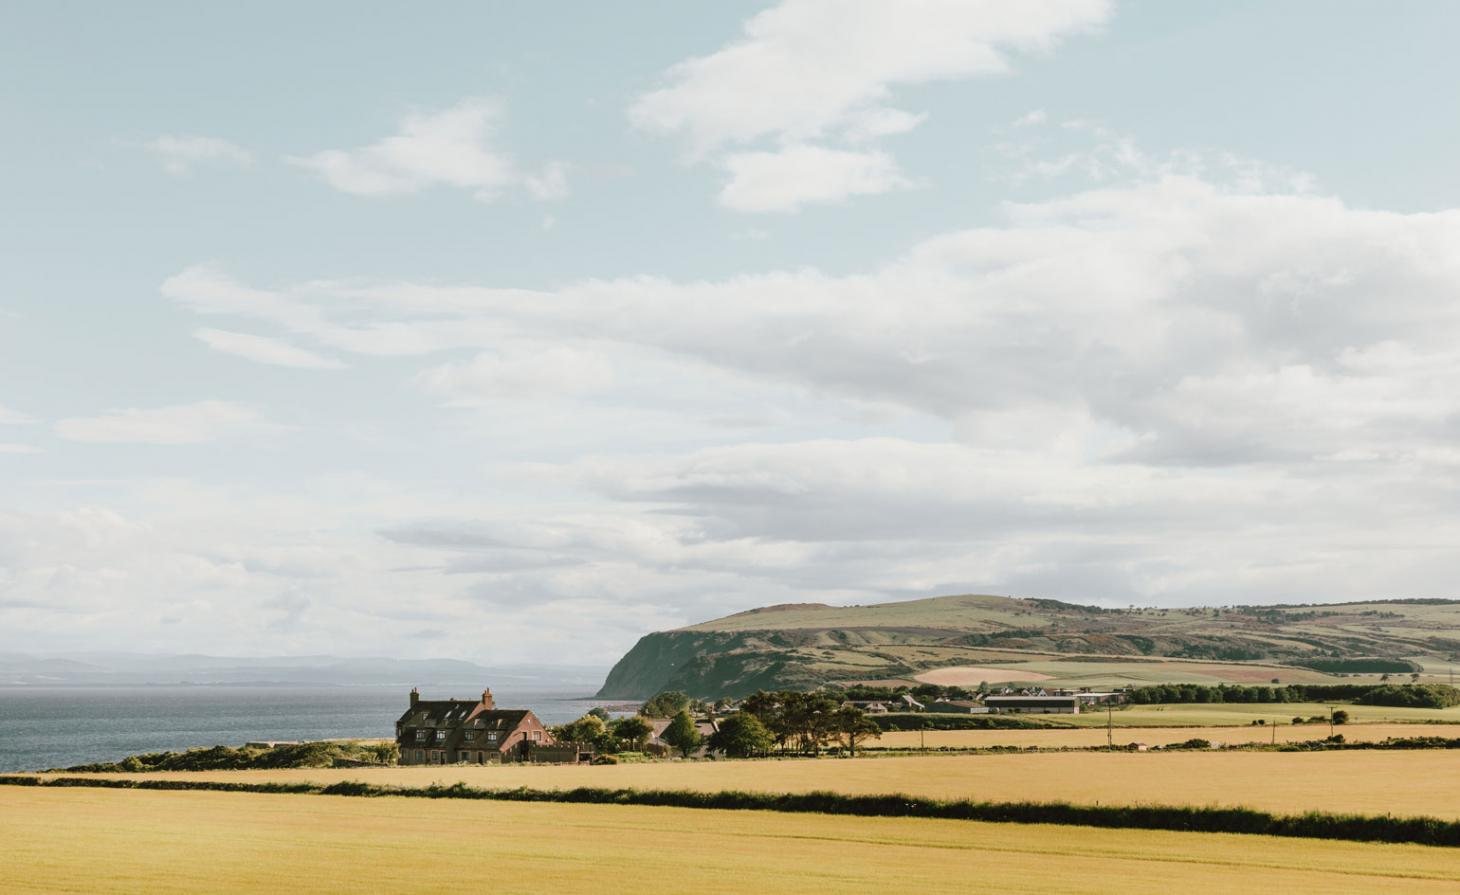 Stunning view of the Scottish Highlands, and Glenmorangie House in 2019